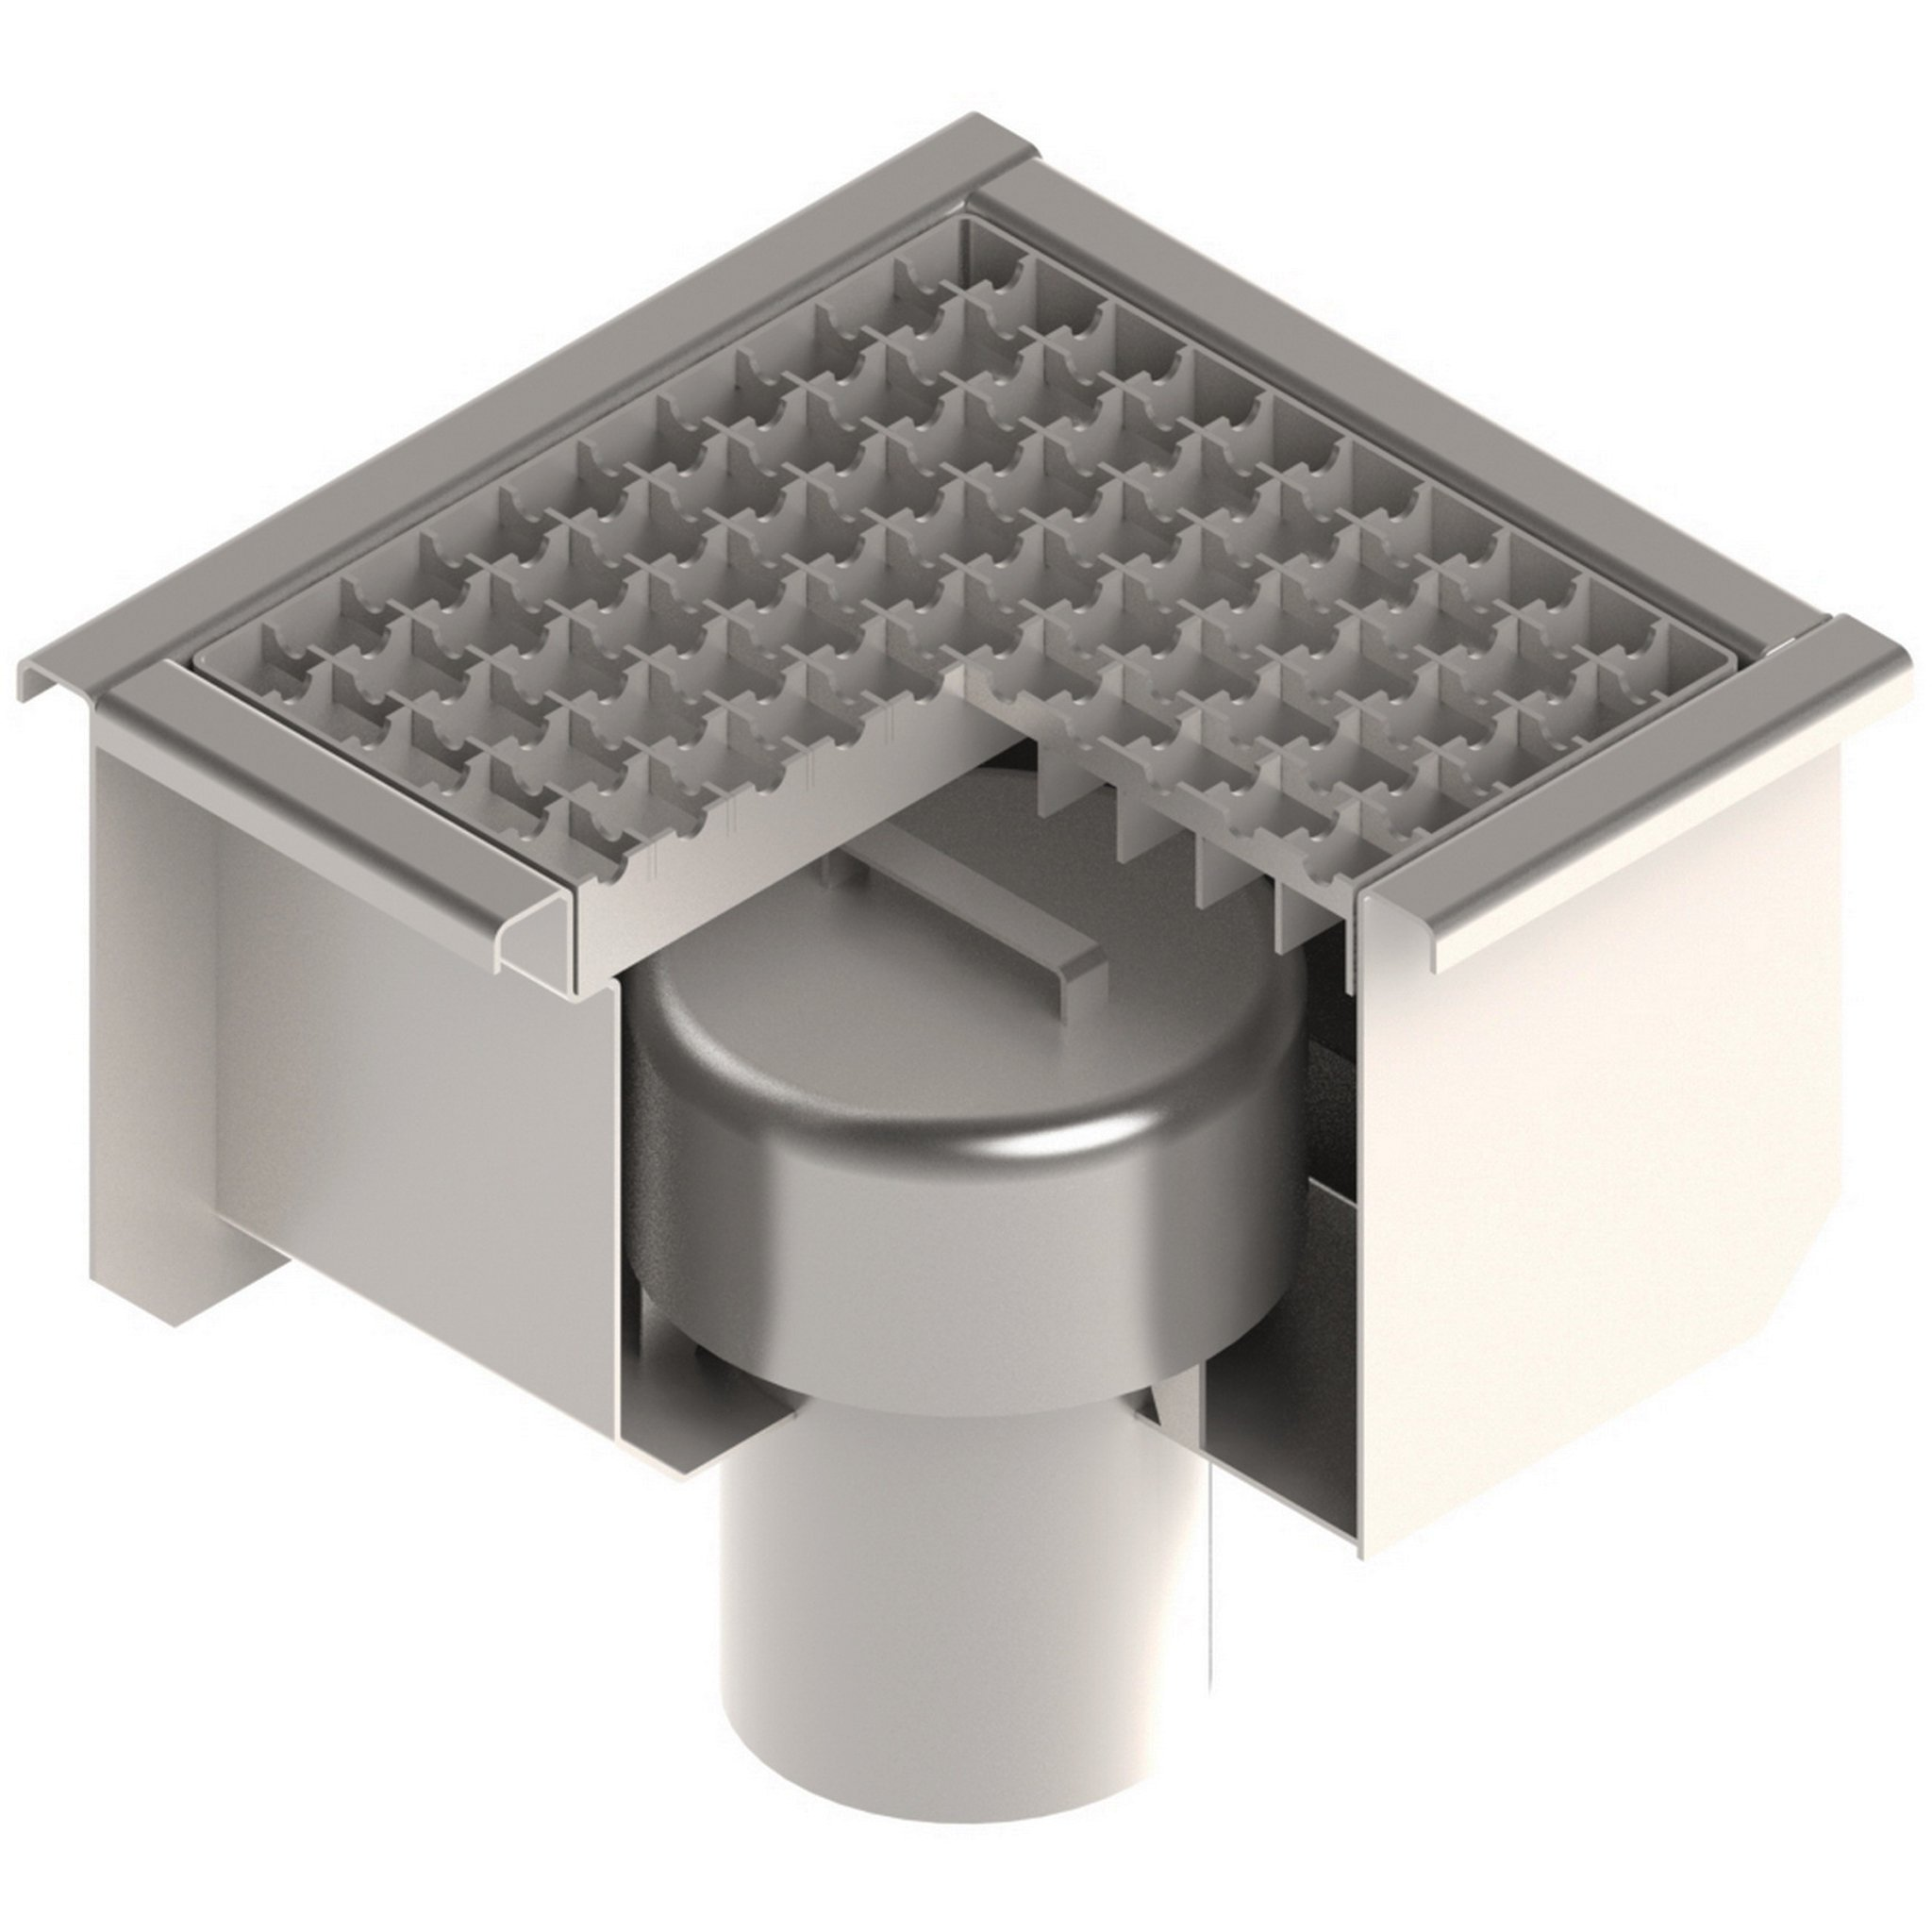 Standartpark - 12x12 Stainless Steel Floor Drain with Anti Slip Grate, Hydro Lock, and 4'' vertical outlet